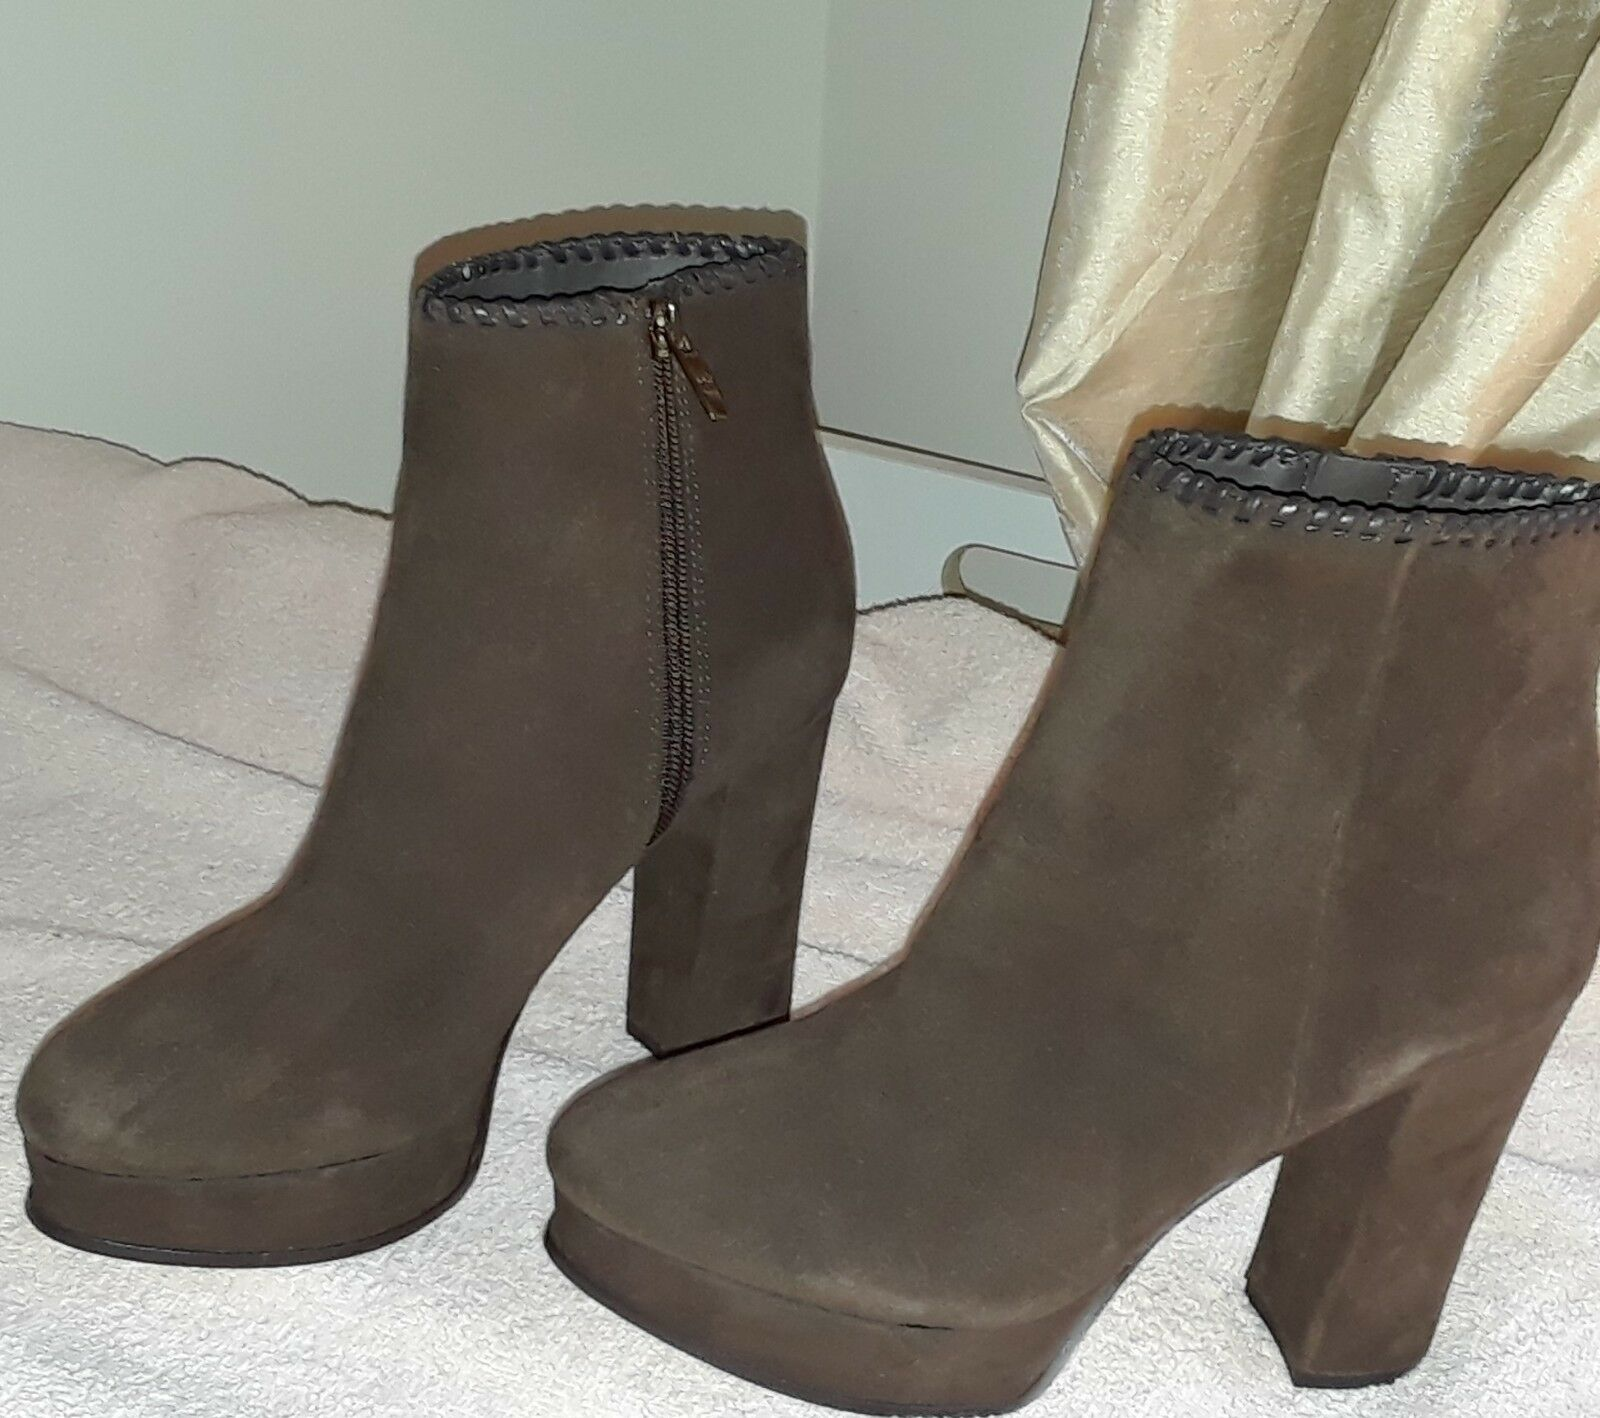 New Marc Fisher Womens Natasia Suede Closed Toe Ankle Fashion Boots 7 M